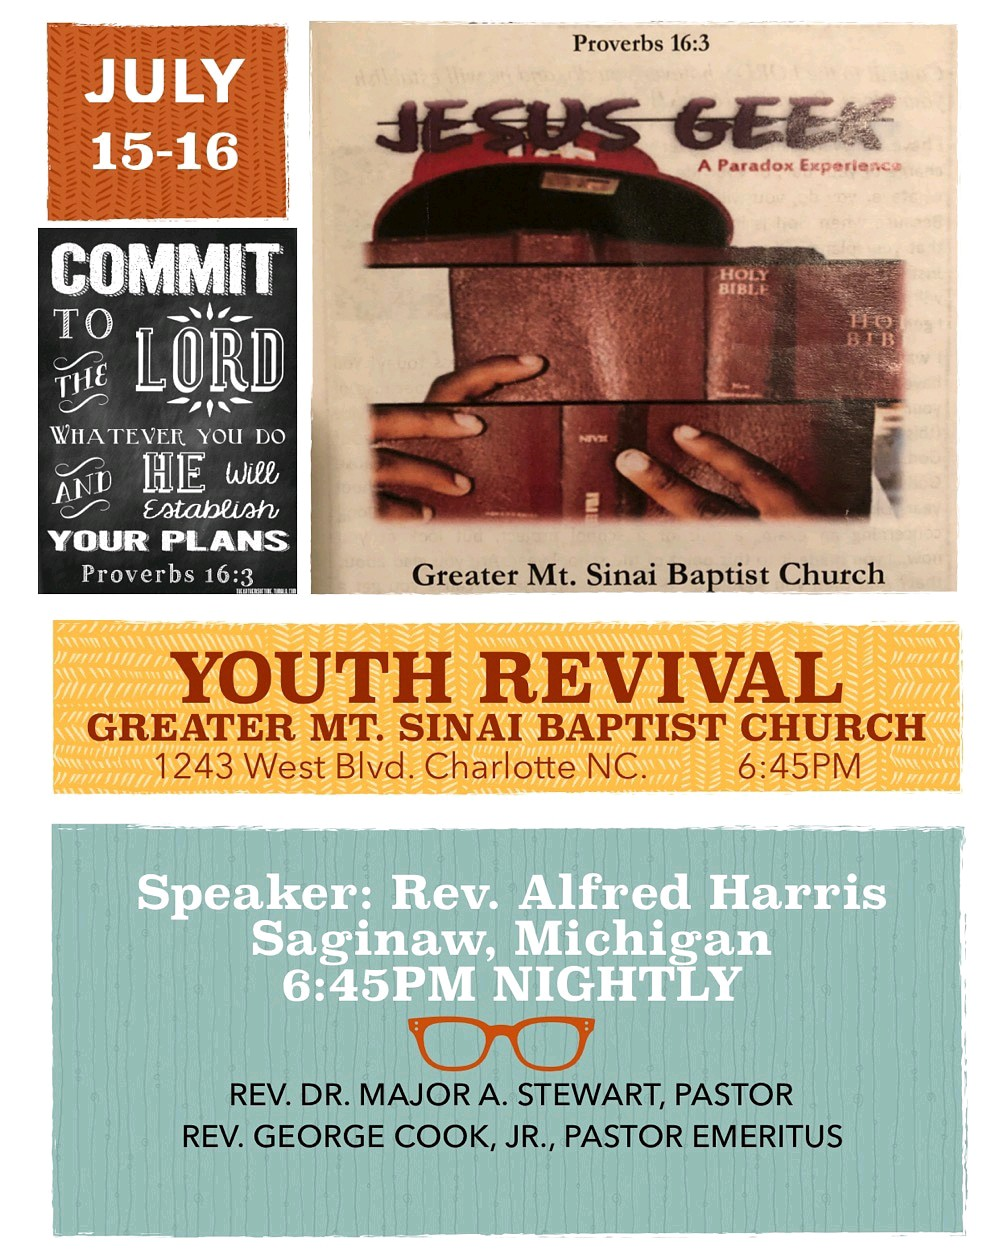 GMSBC_Youth_Revival_2019.jpg